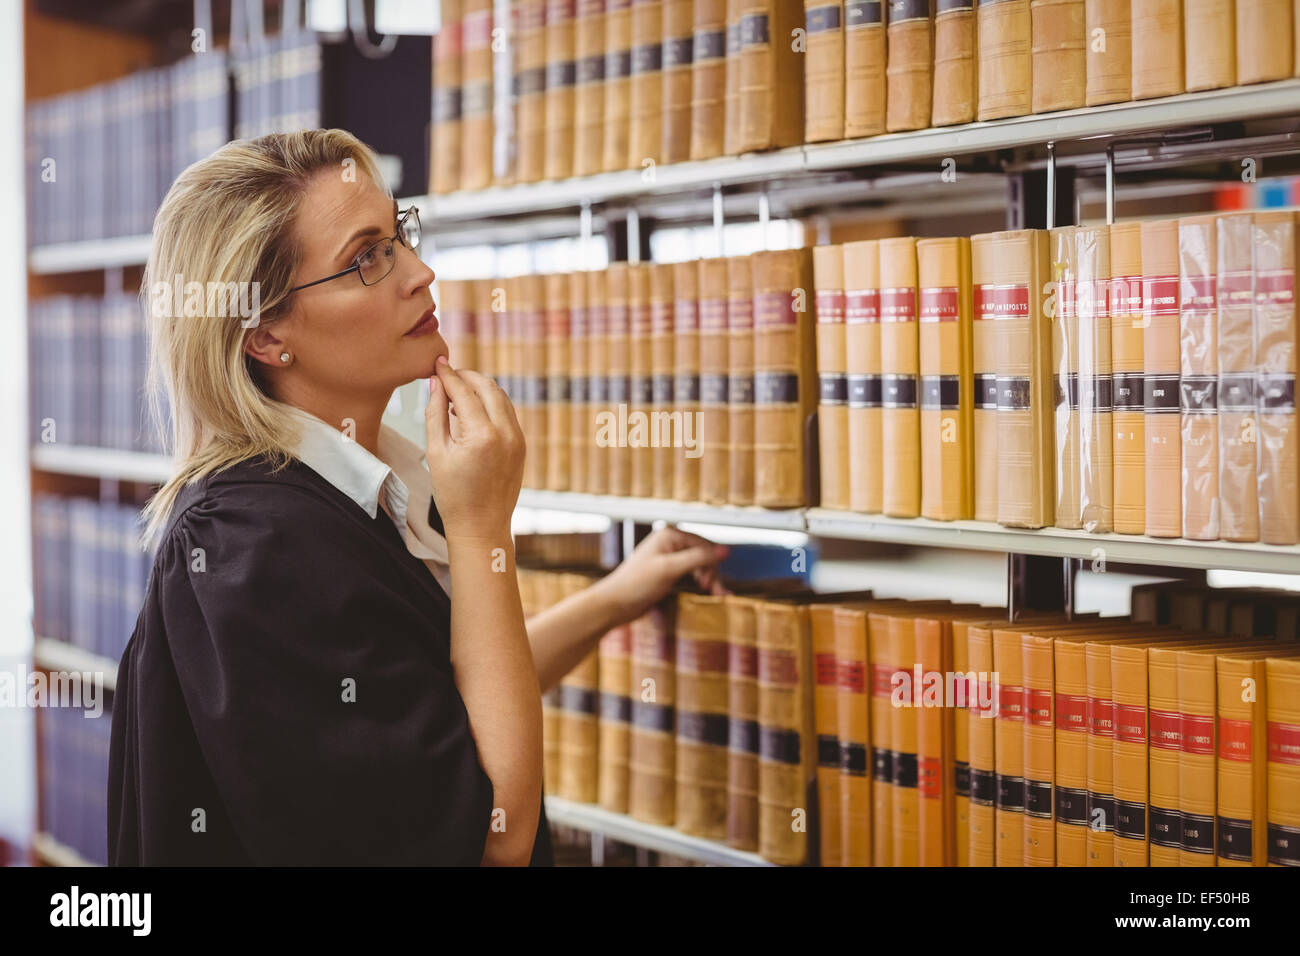 Lawyer wearing glasses and looking for a book in the shelf - Stock Image